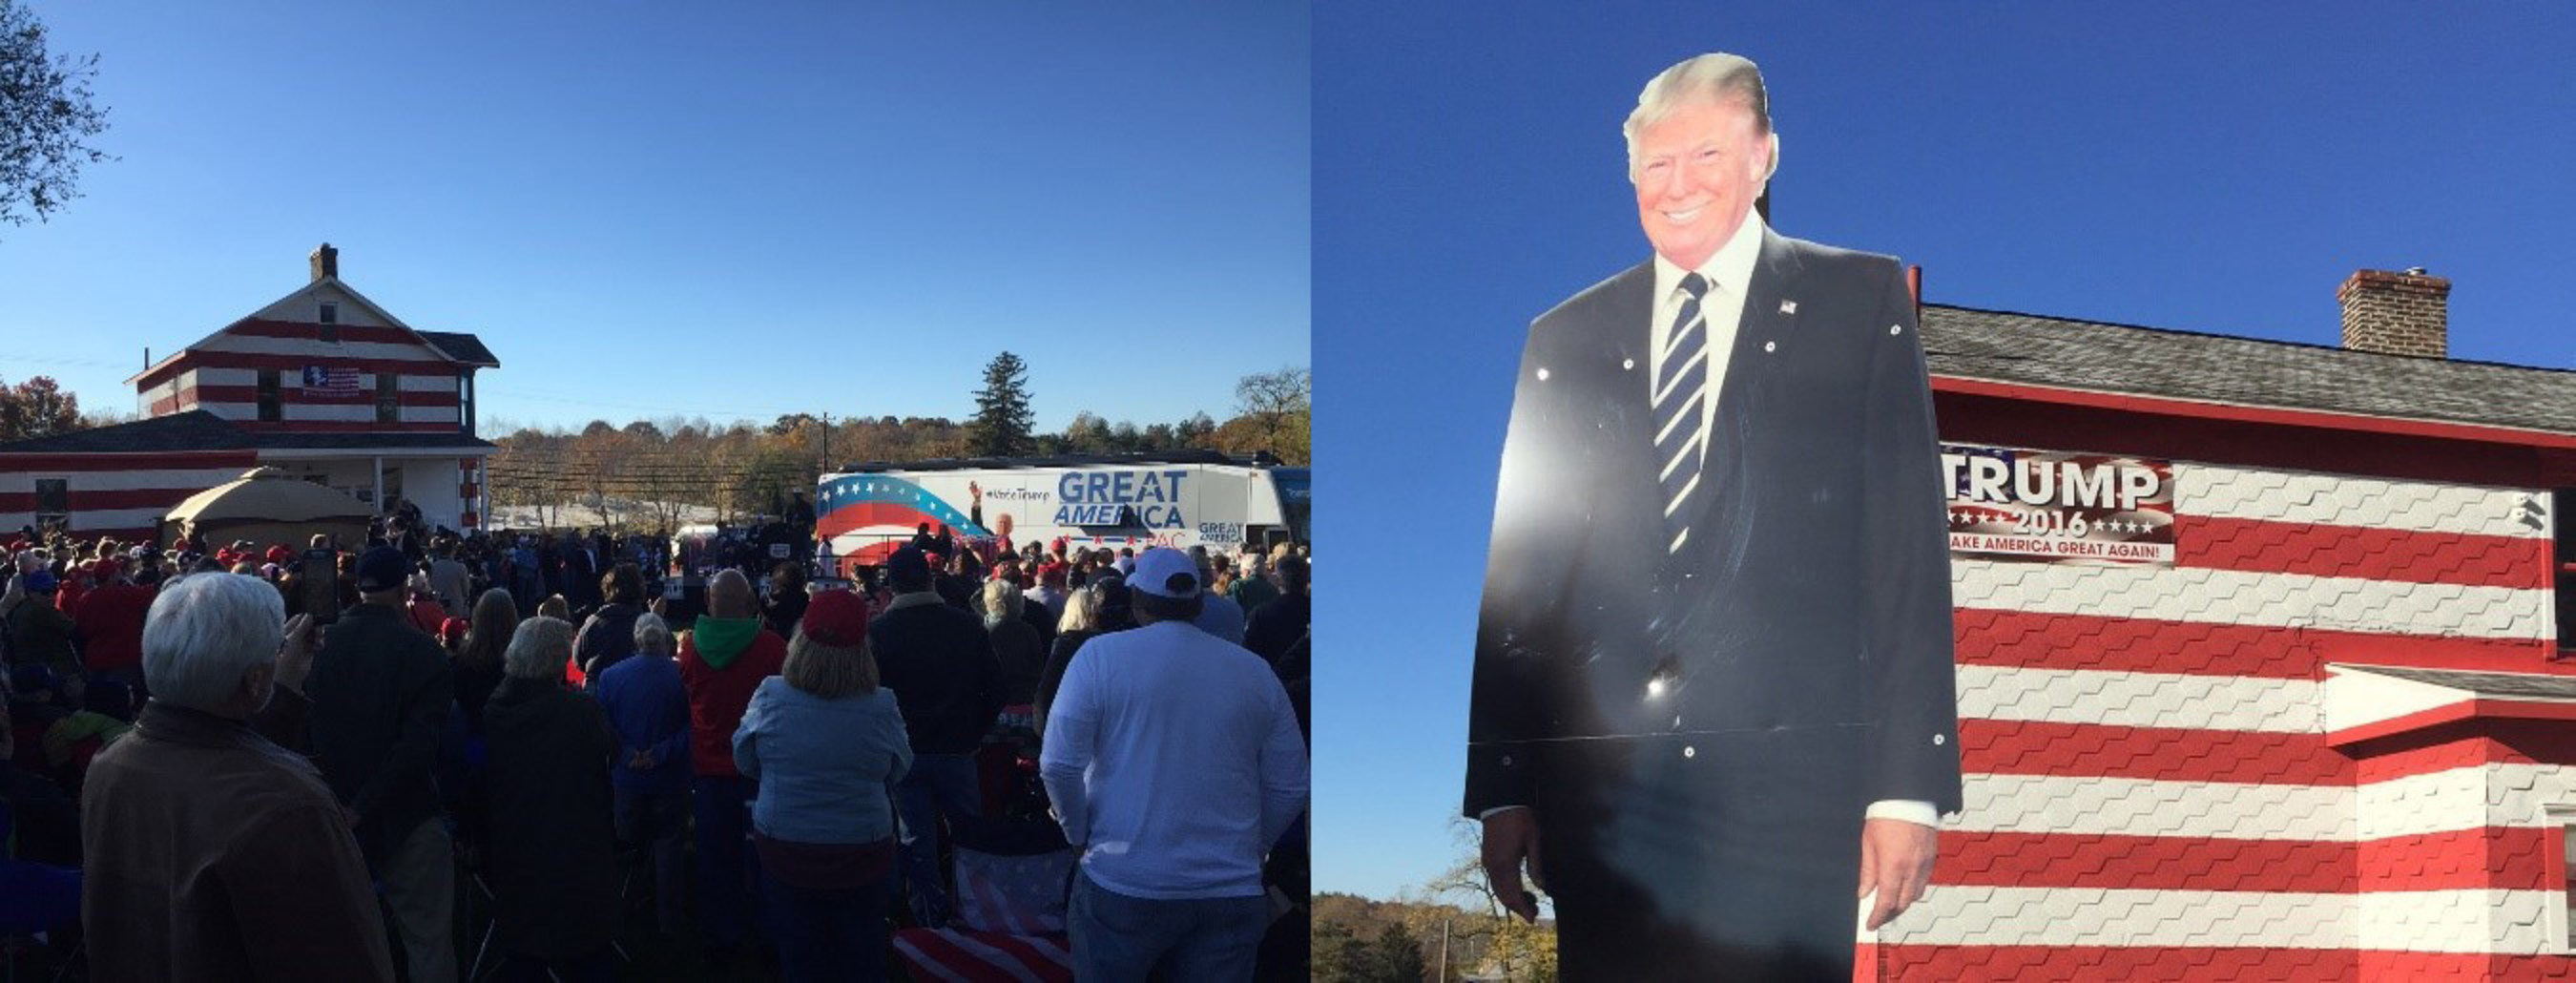 """""""Trump House"""" event - Sheriff David Clarke and others address a crowd of over 1,000"""